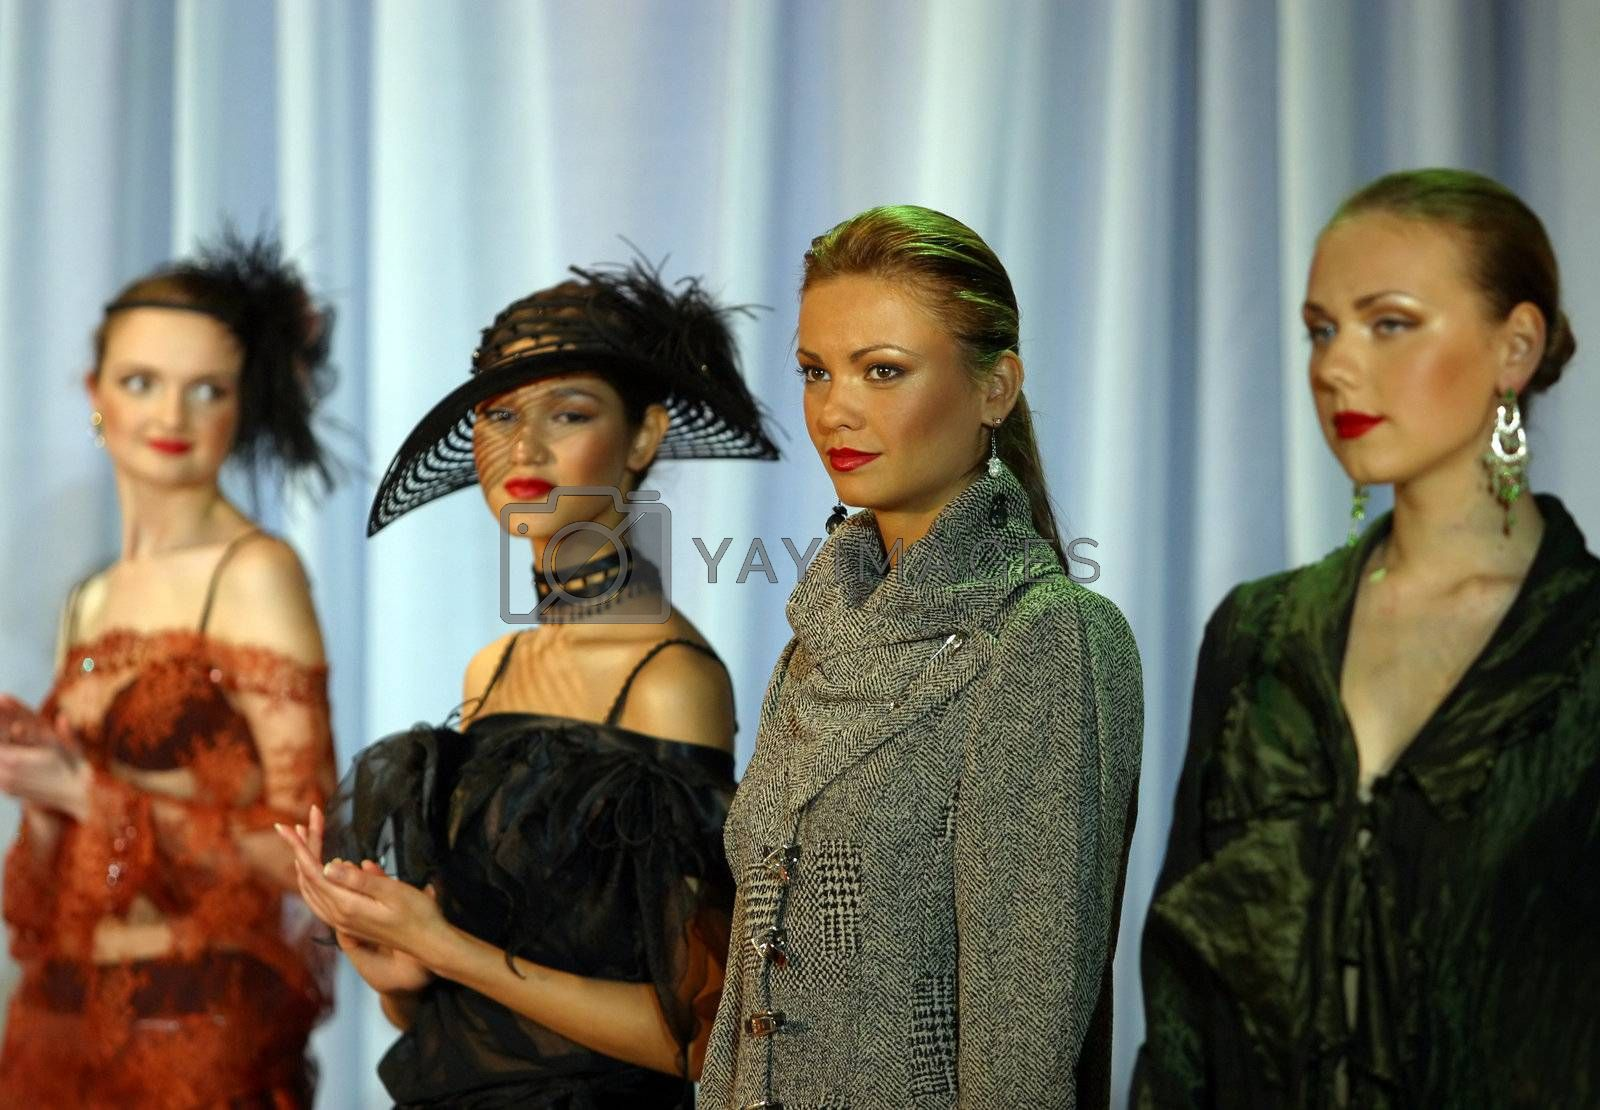 The girls - models in a hat on display of clothes